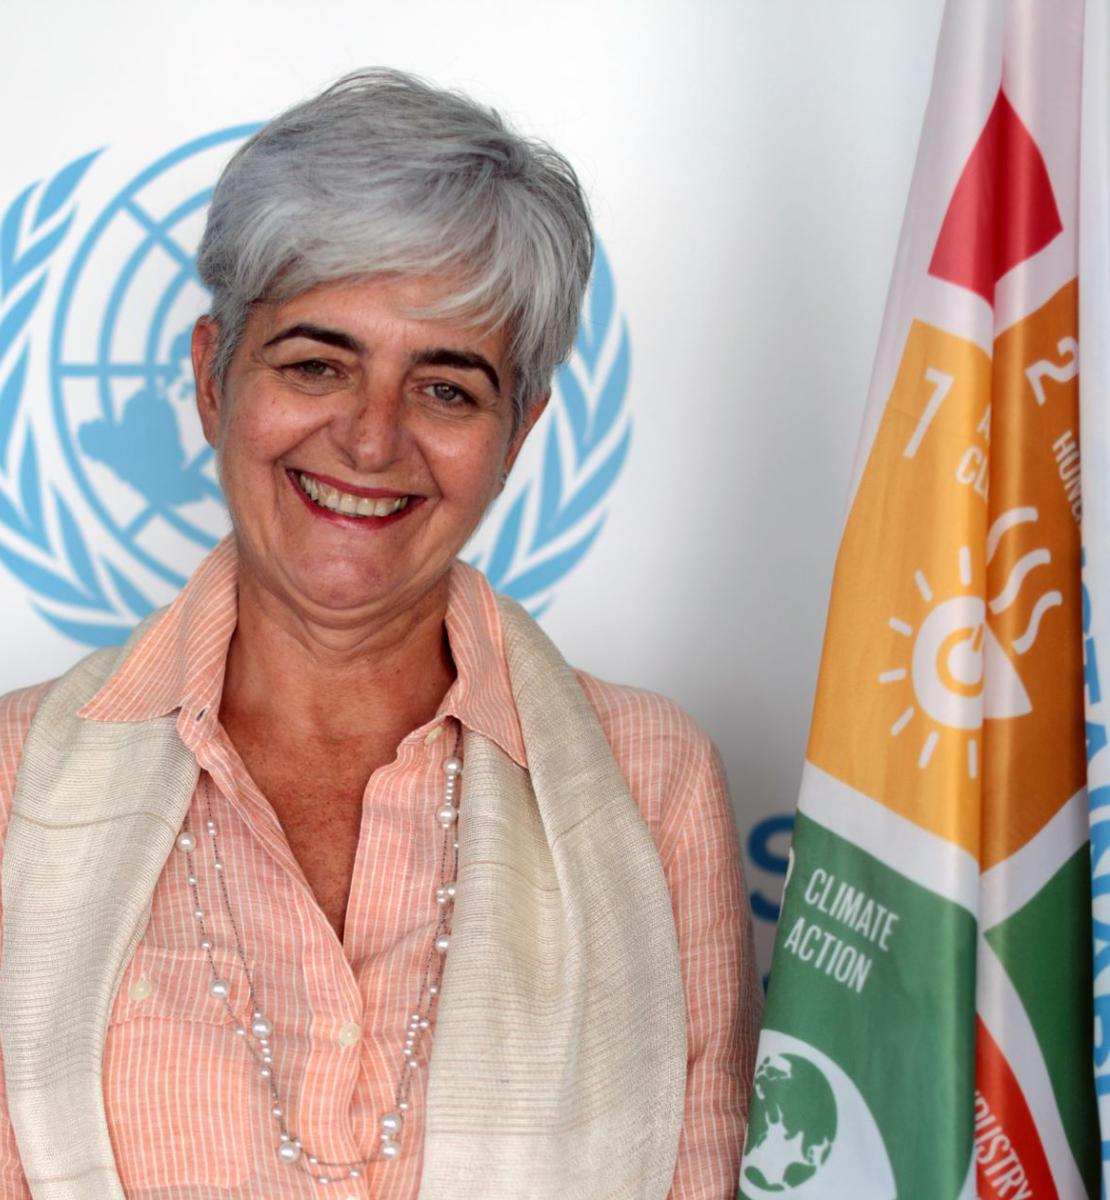 A woman smiles at the camera in front of the United Nations Sustainable Development Goals Flag and the United Nations Symbol.